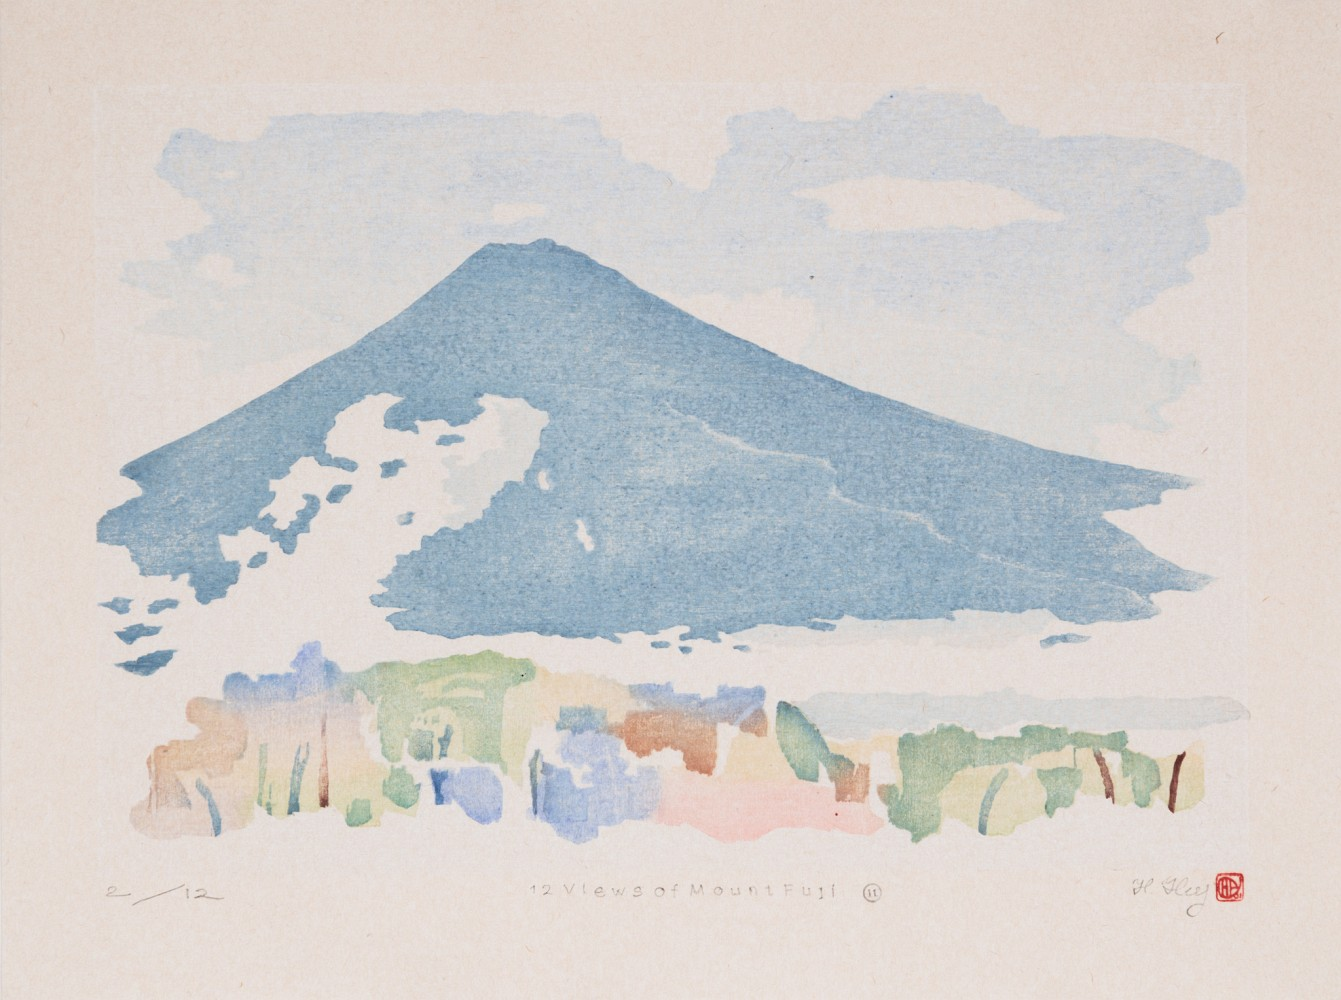 Full image of artwork 12 Views of Mount Fuji #11